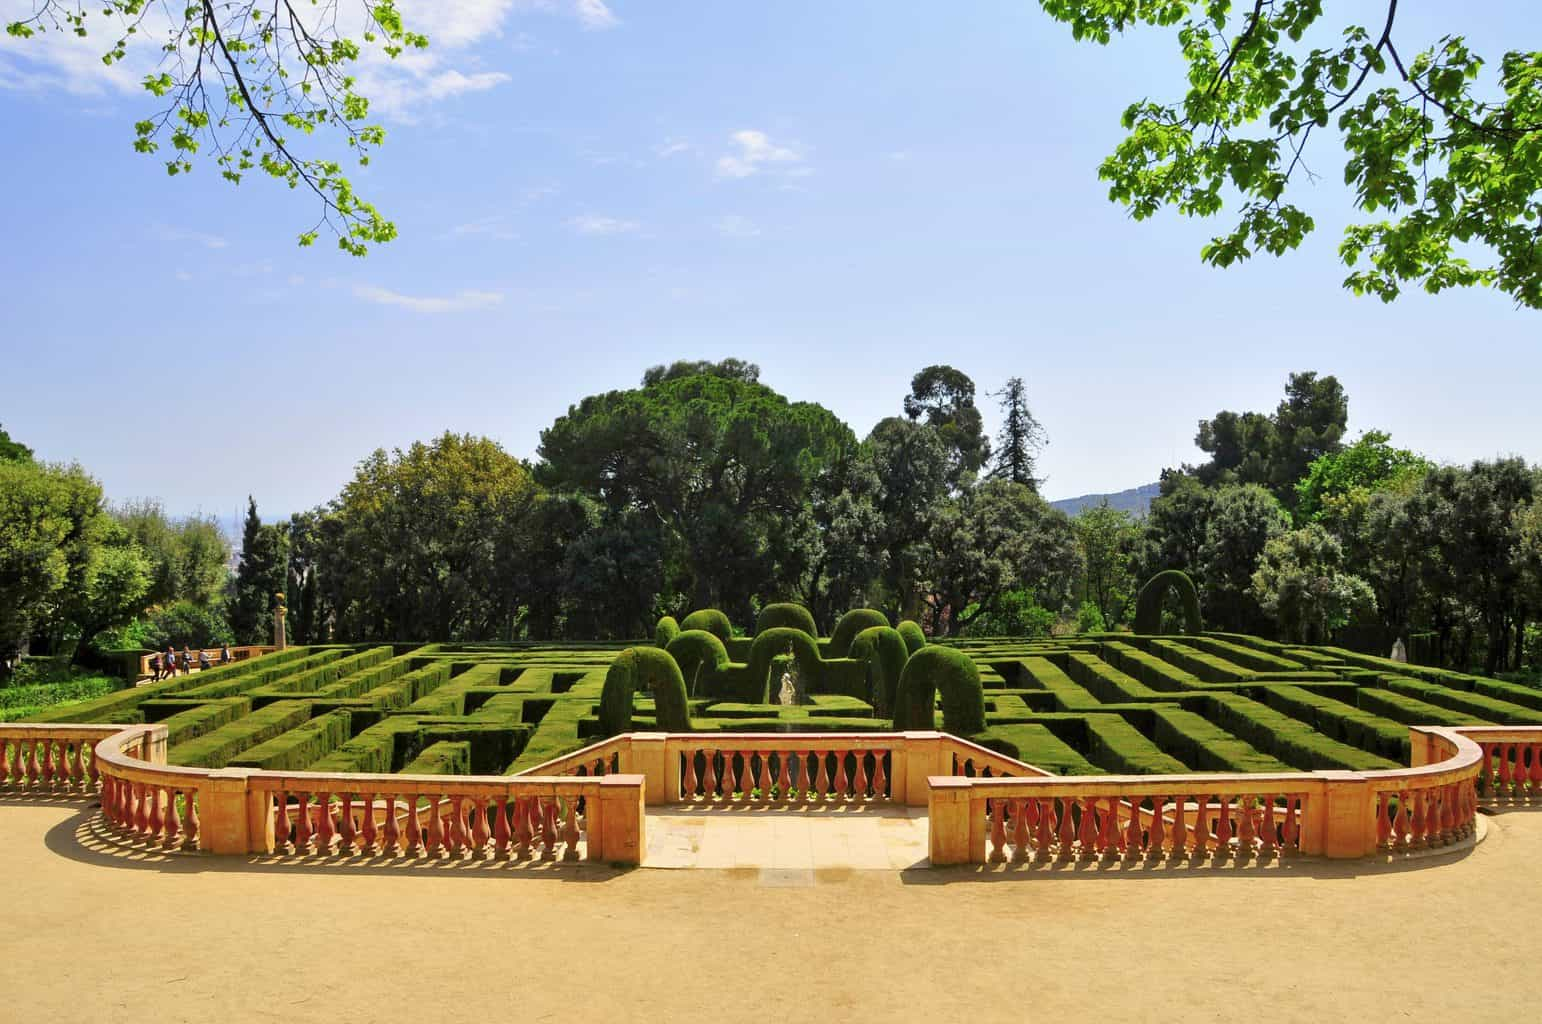 The elaborate hedge maze that can be found at the center of the oldest park in Barcelona, Labyrinth Park of Horta (AKA Parc del Laberint d'Horta).